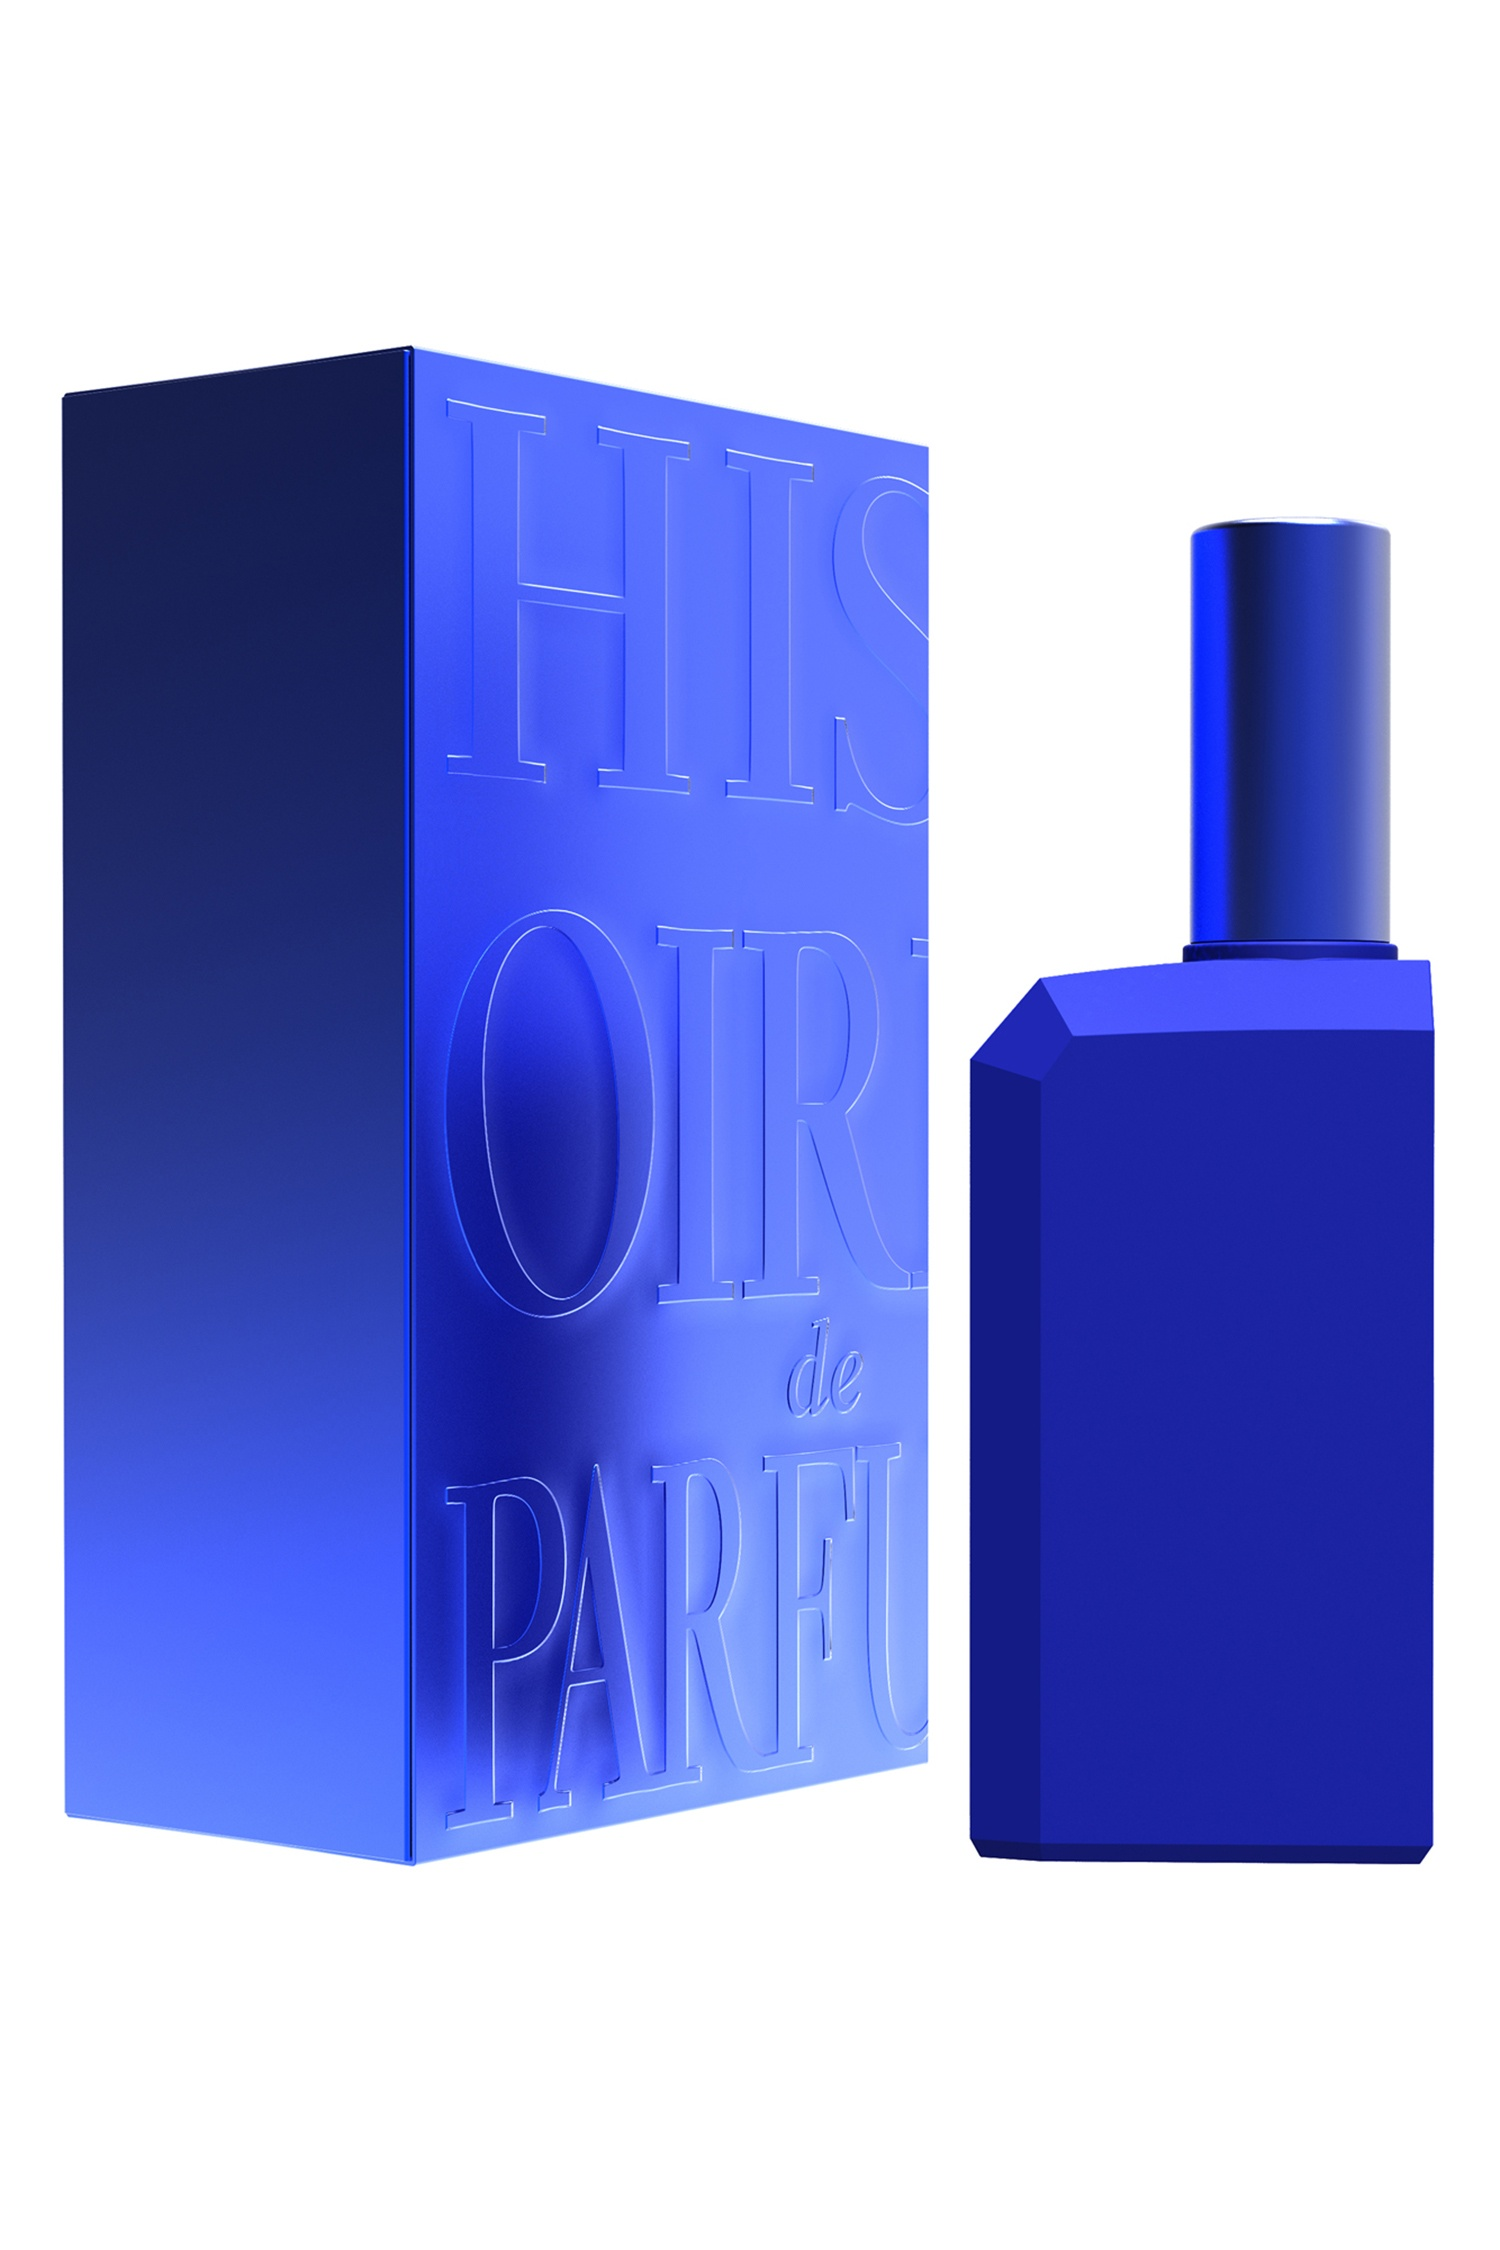 Парфюмерная вода this is not a blue bottle 1/.1, 60 ml Histoires De Parfums (фото)